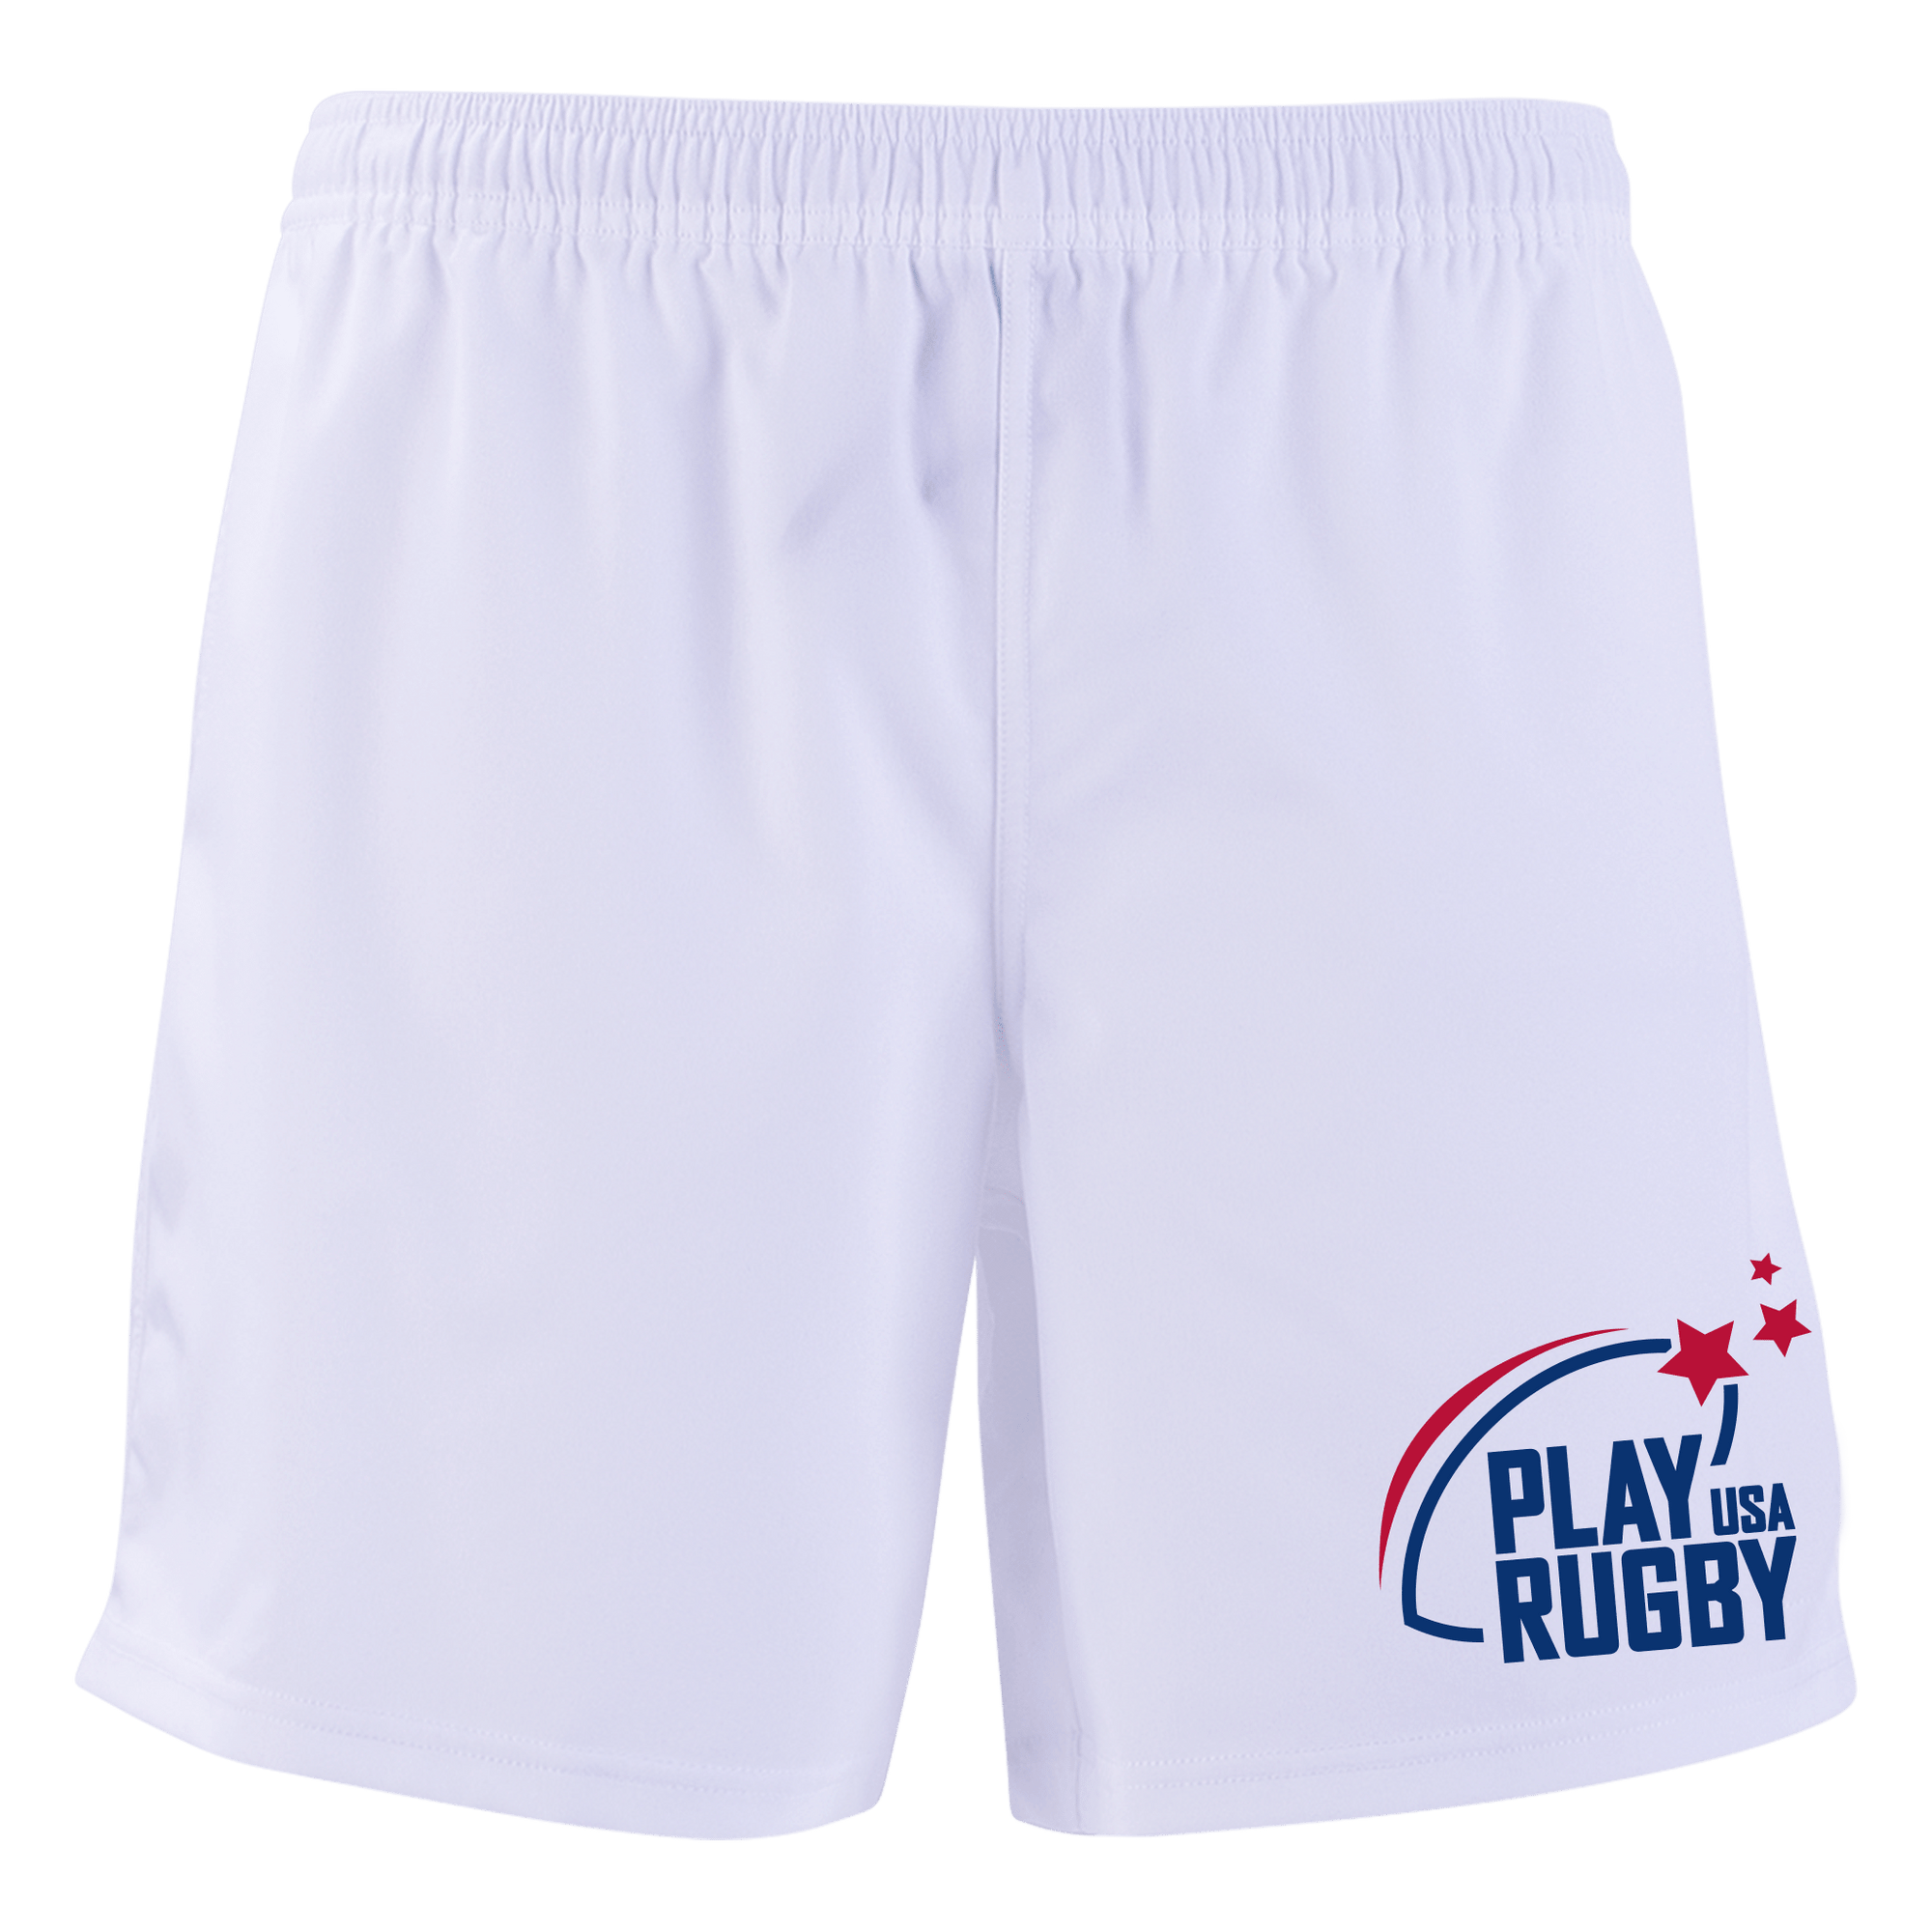 Play Rugby USA Men's Sideline Shorts